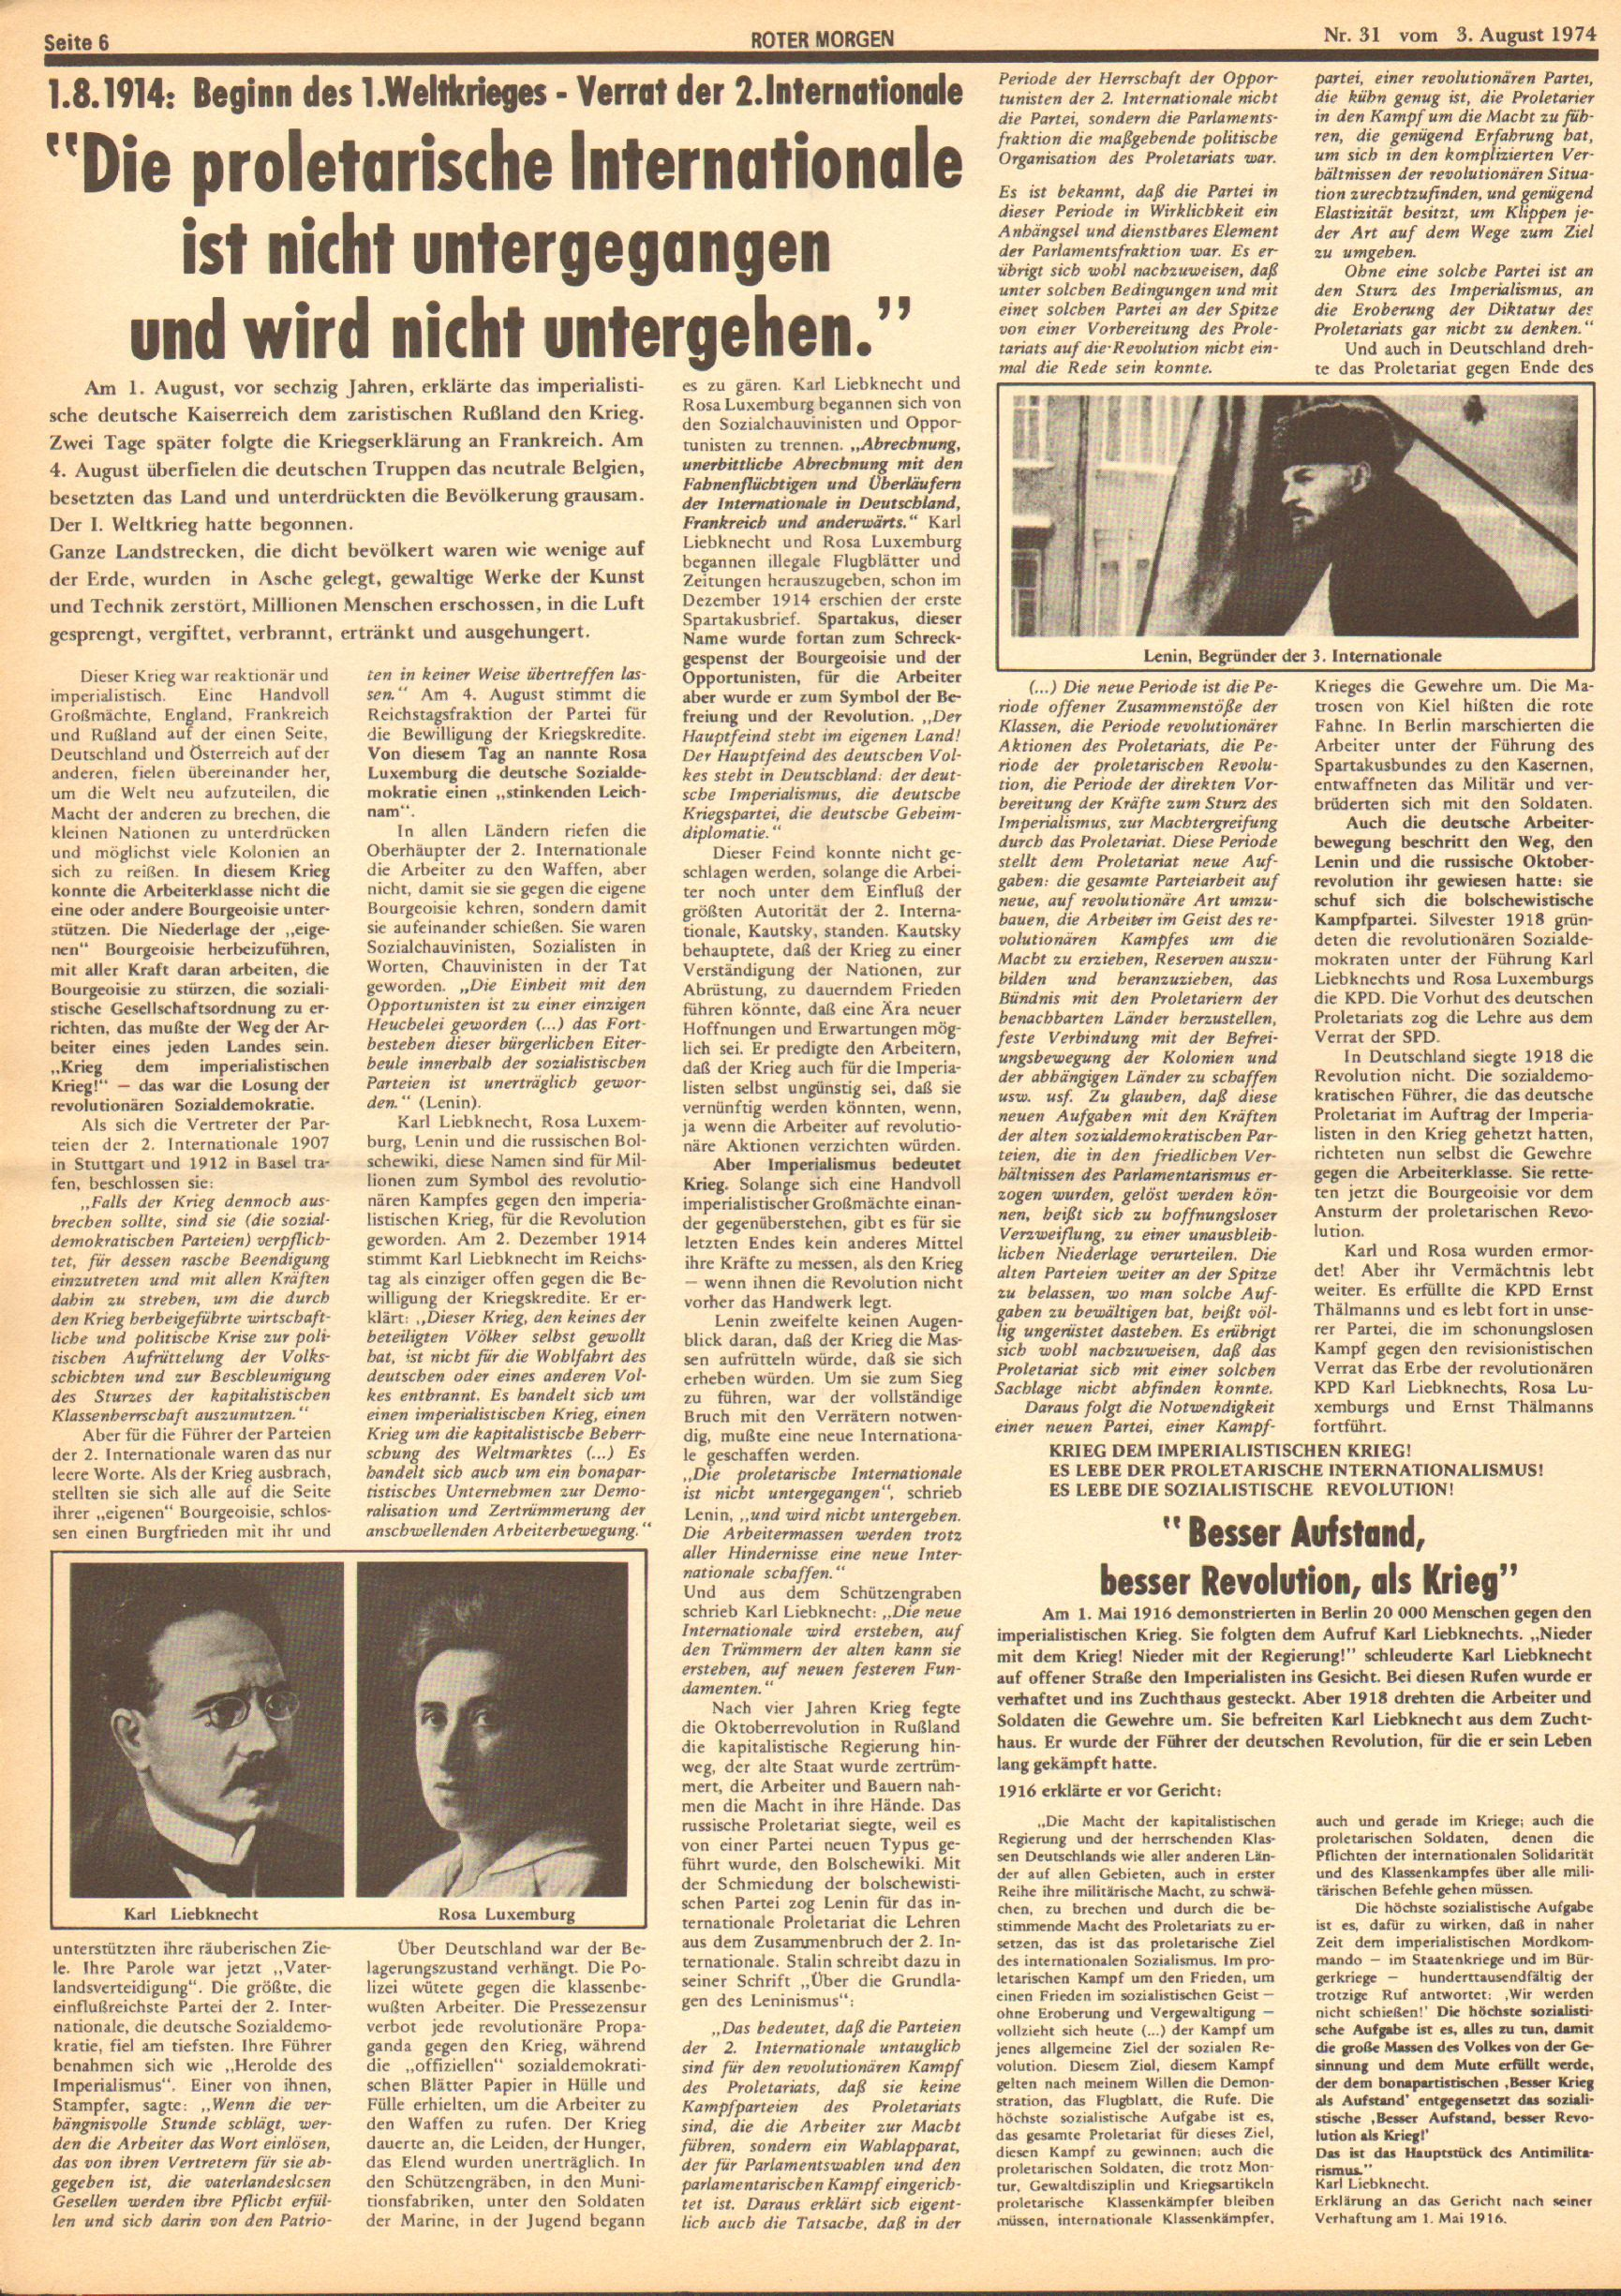 Roter Morgen, 8. Jg., 3. August 1974, Nr. 31, Seite 6